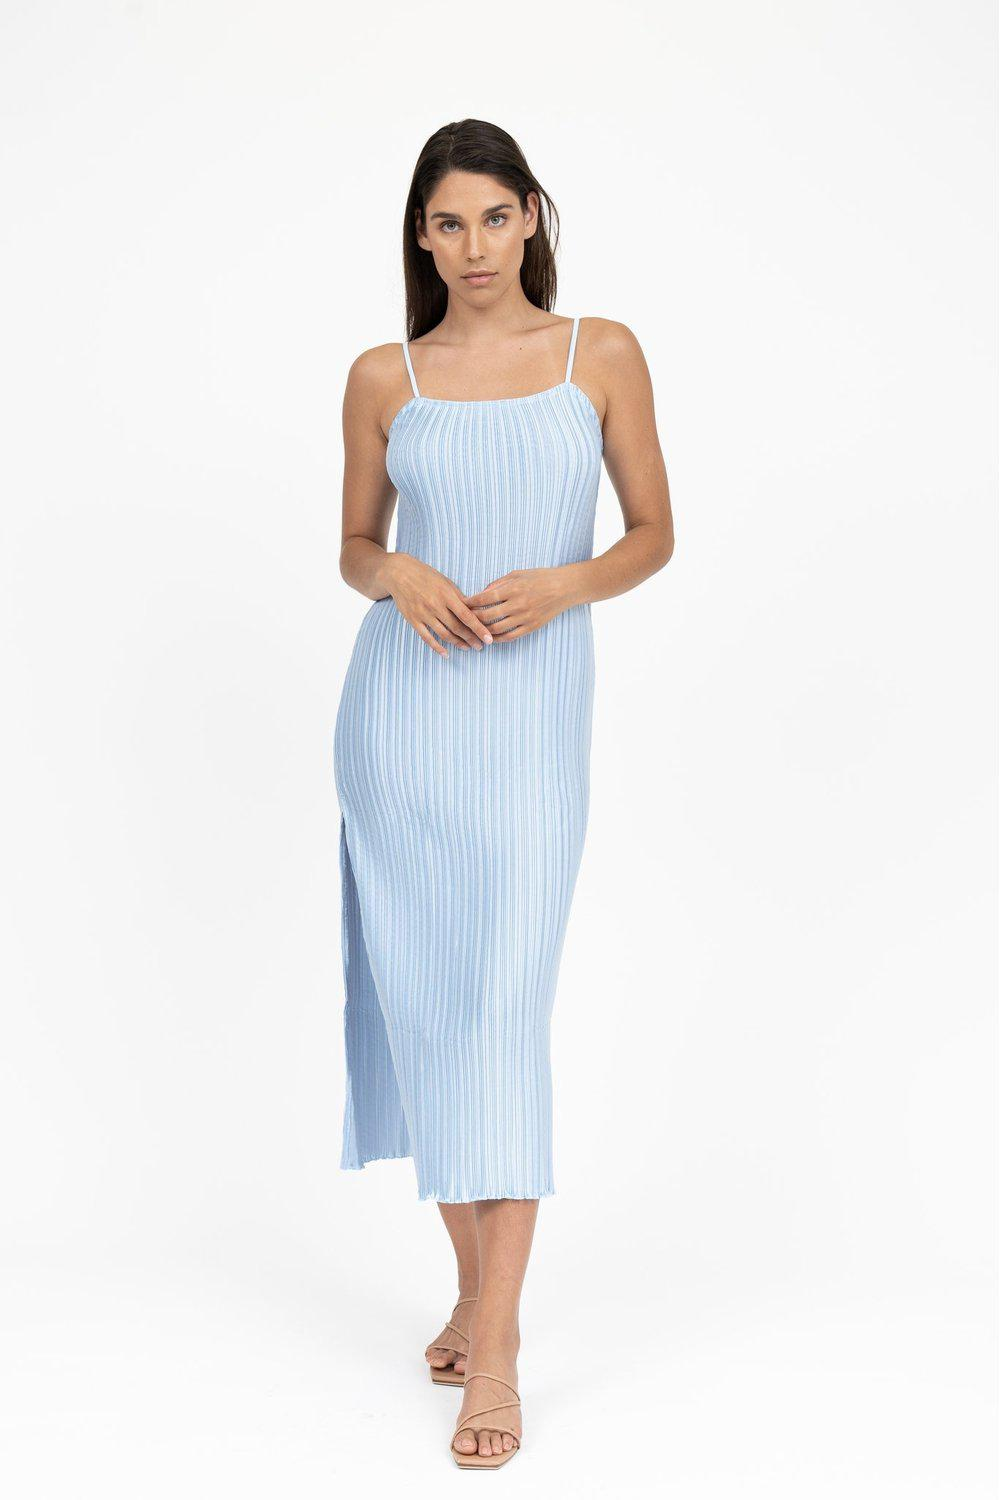 Sirene Simple Slip / Ice Blue | L'idèe | Mad About The Boy